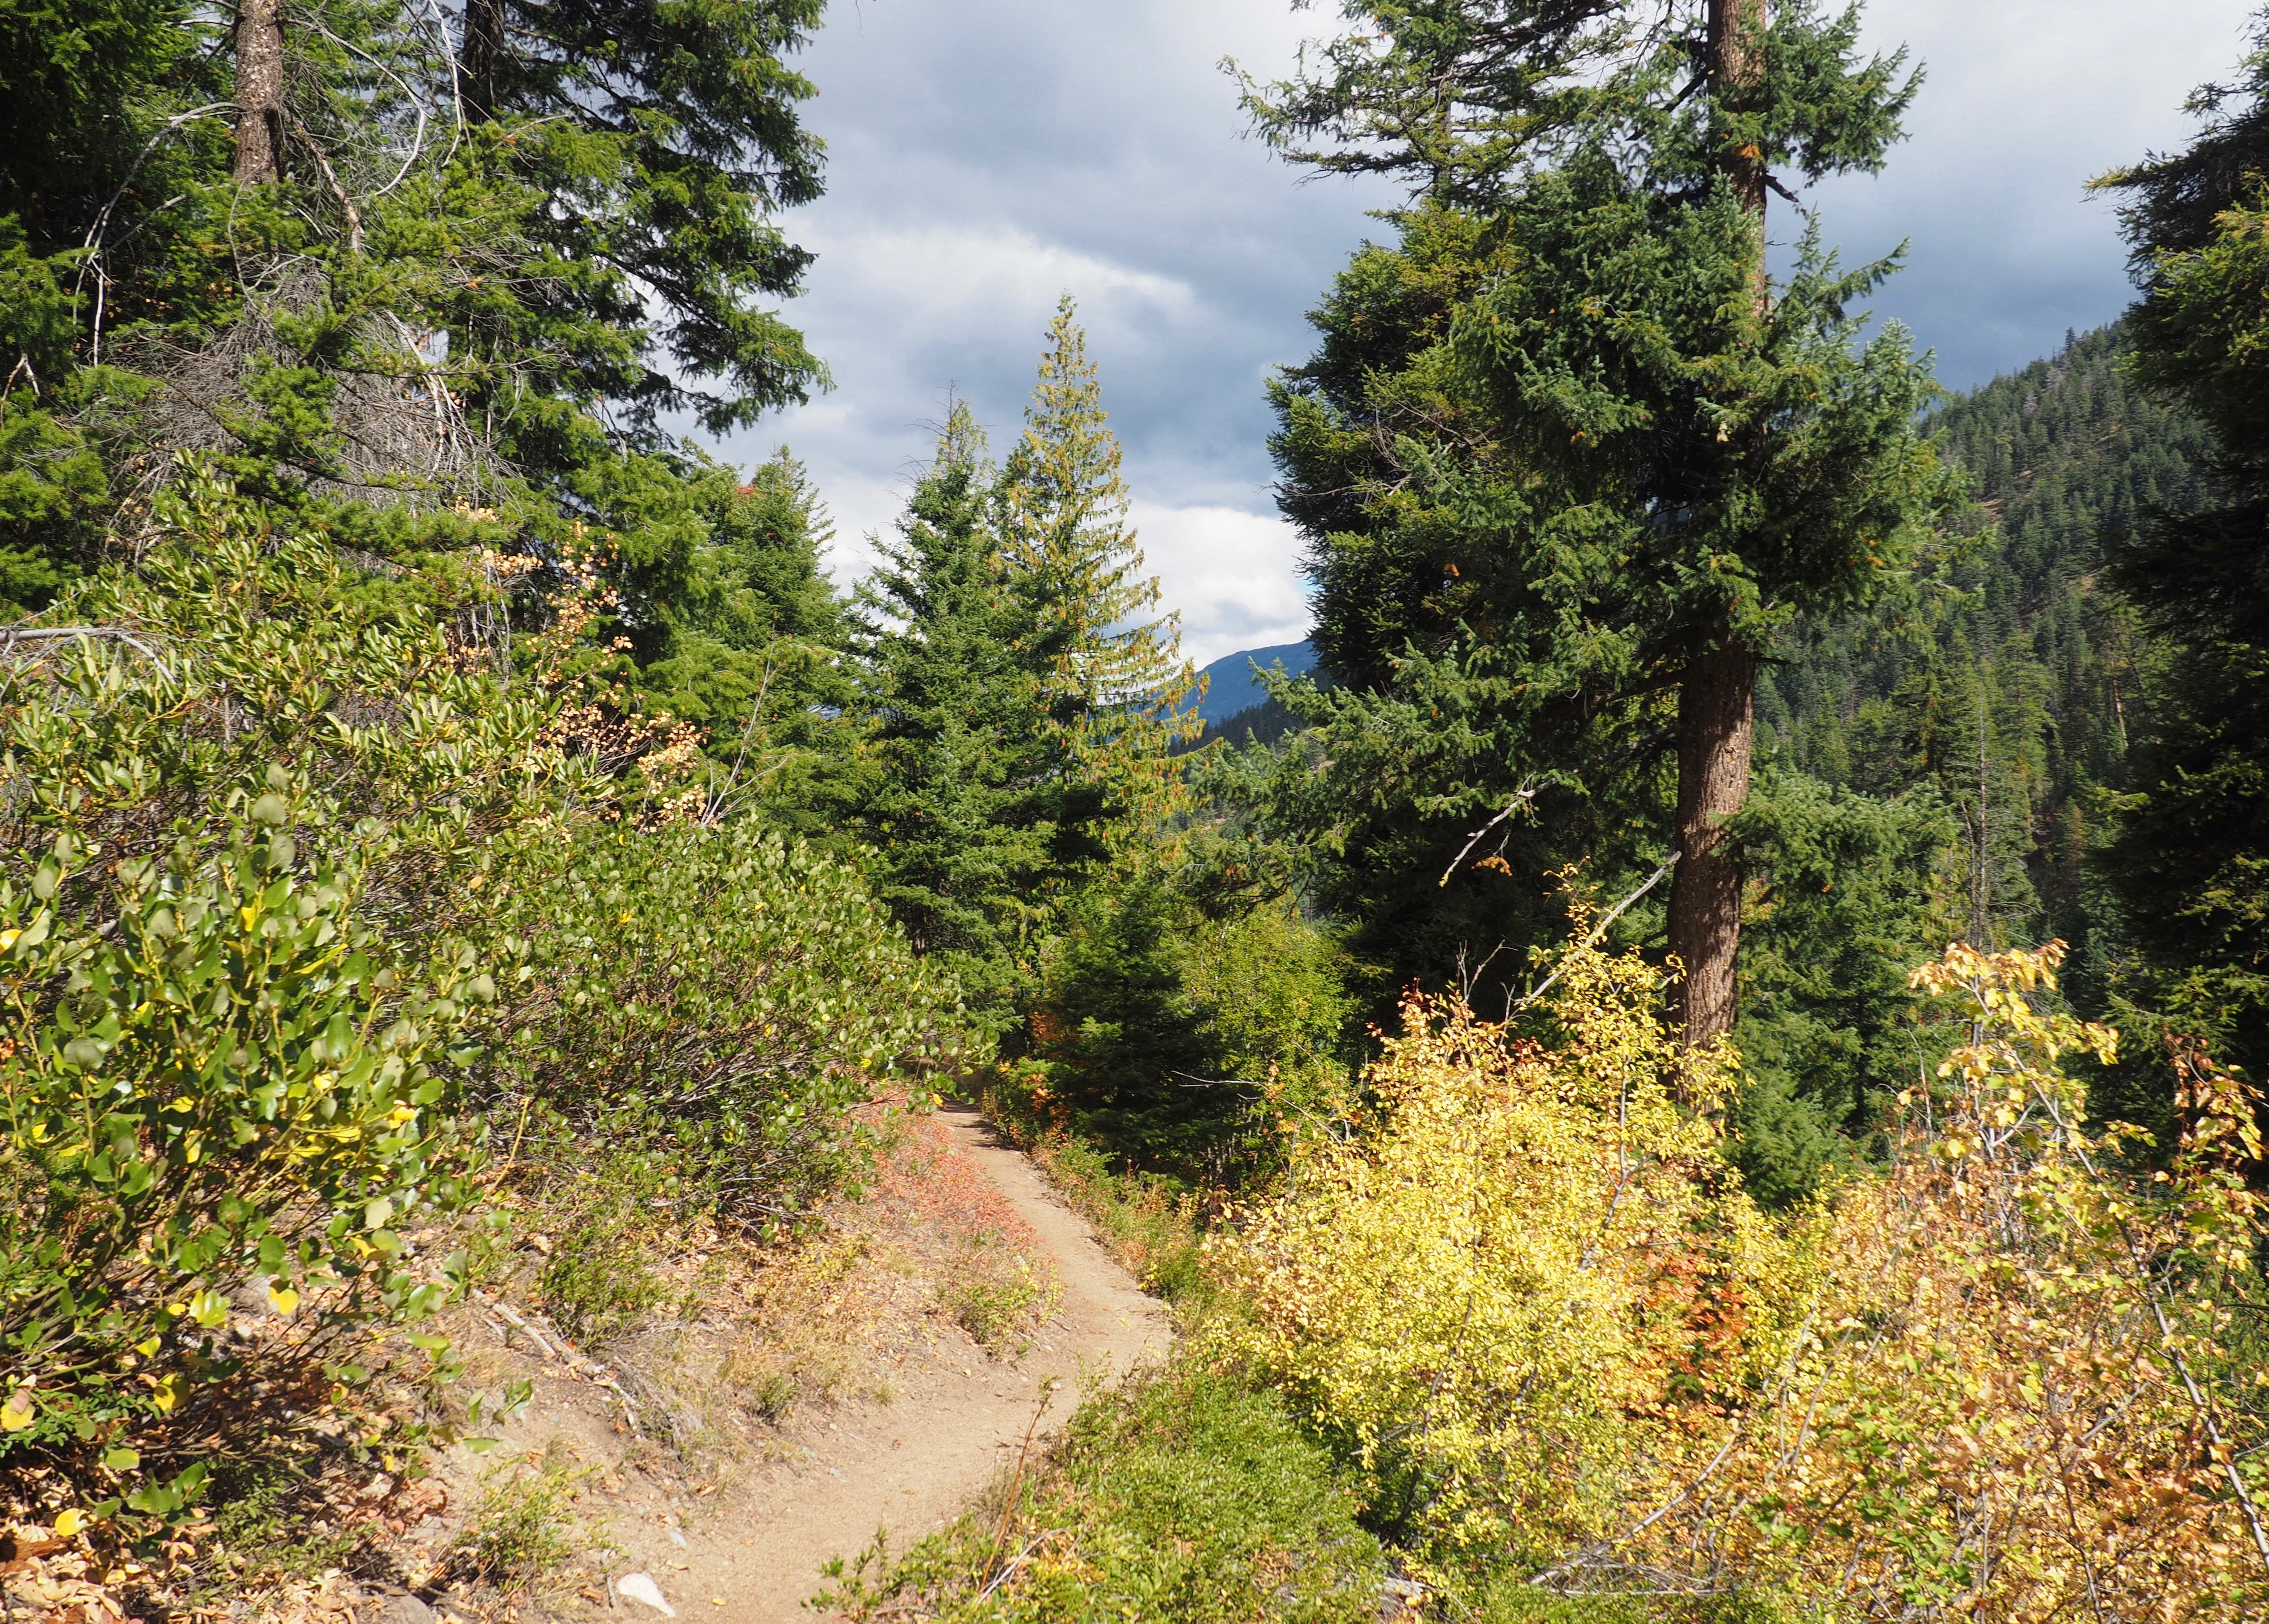 The trail passes through alternating forest and open brush. Cedar Falls Trail, September 21, 2016.